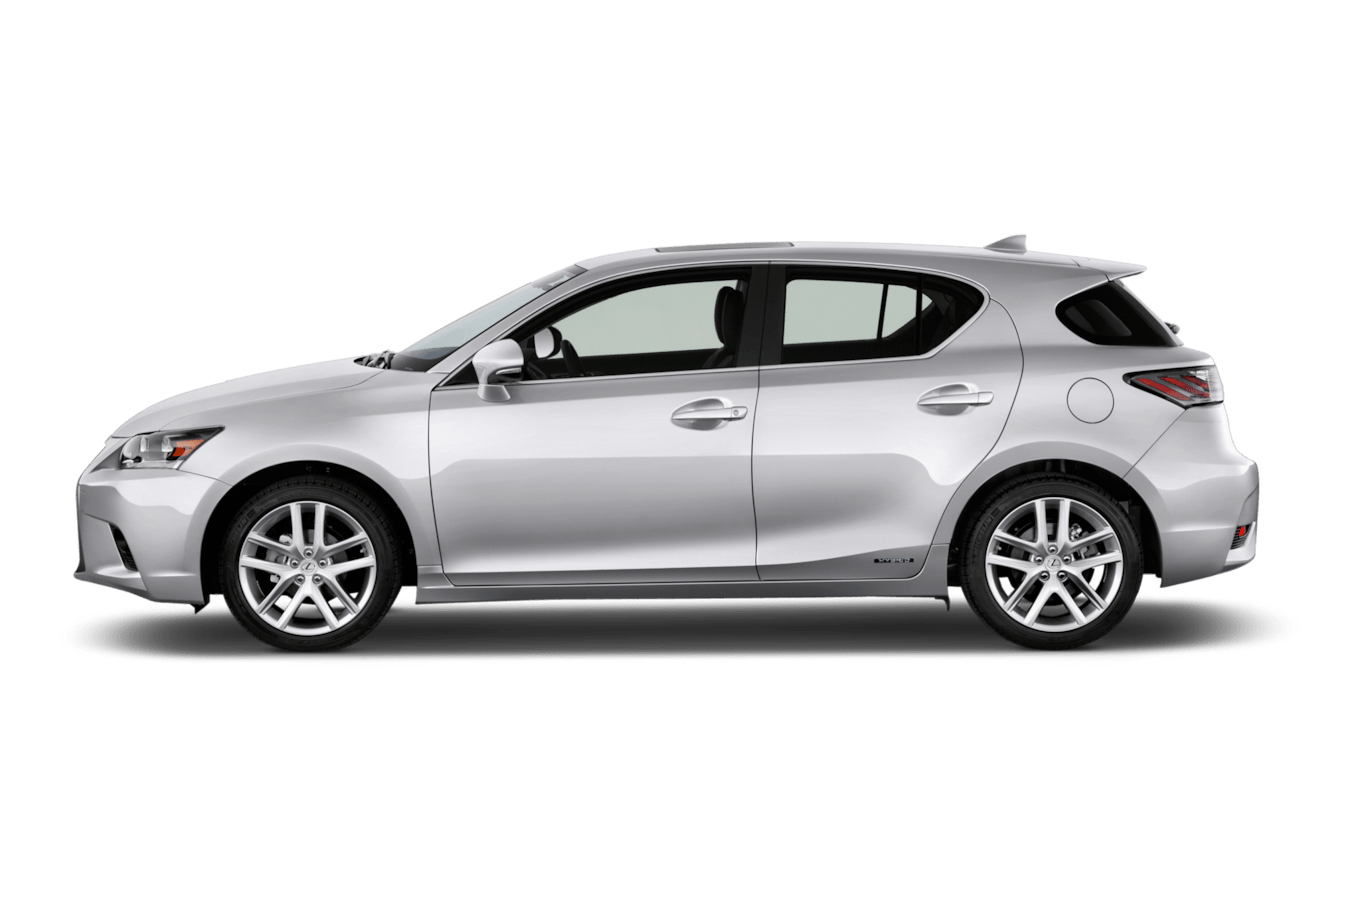 2014 Lexus Ct 200h Side View Photo 8 Auto Electrical Wiring Diagram